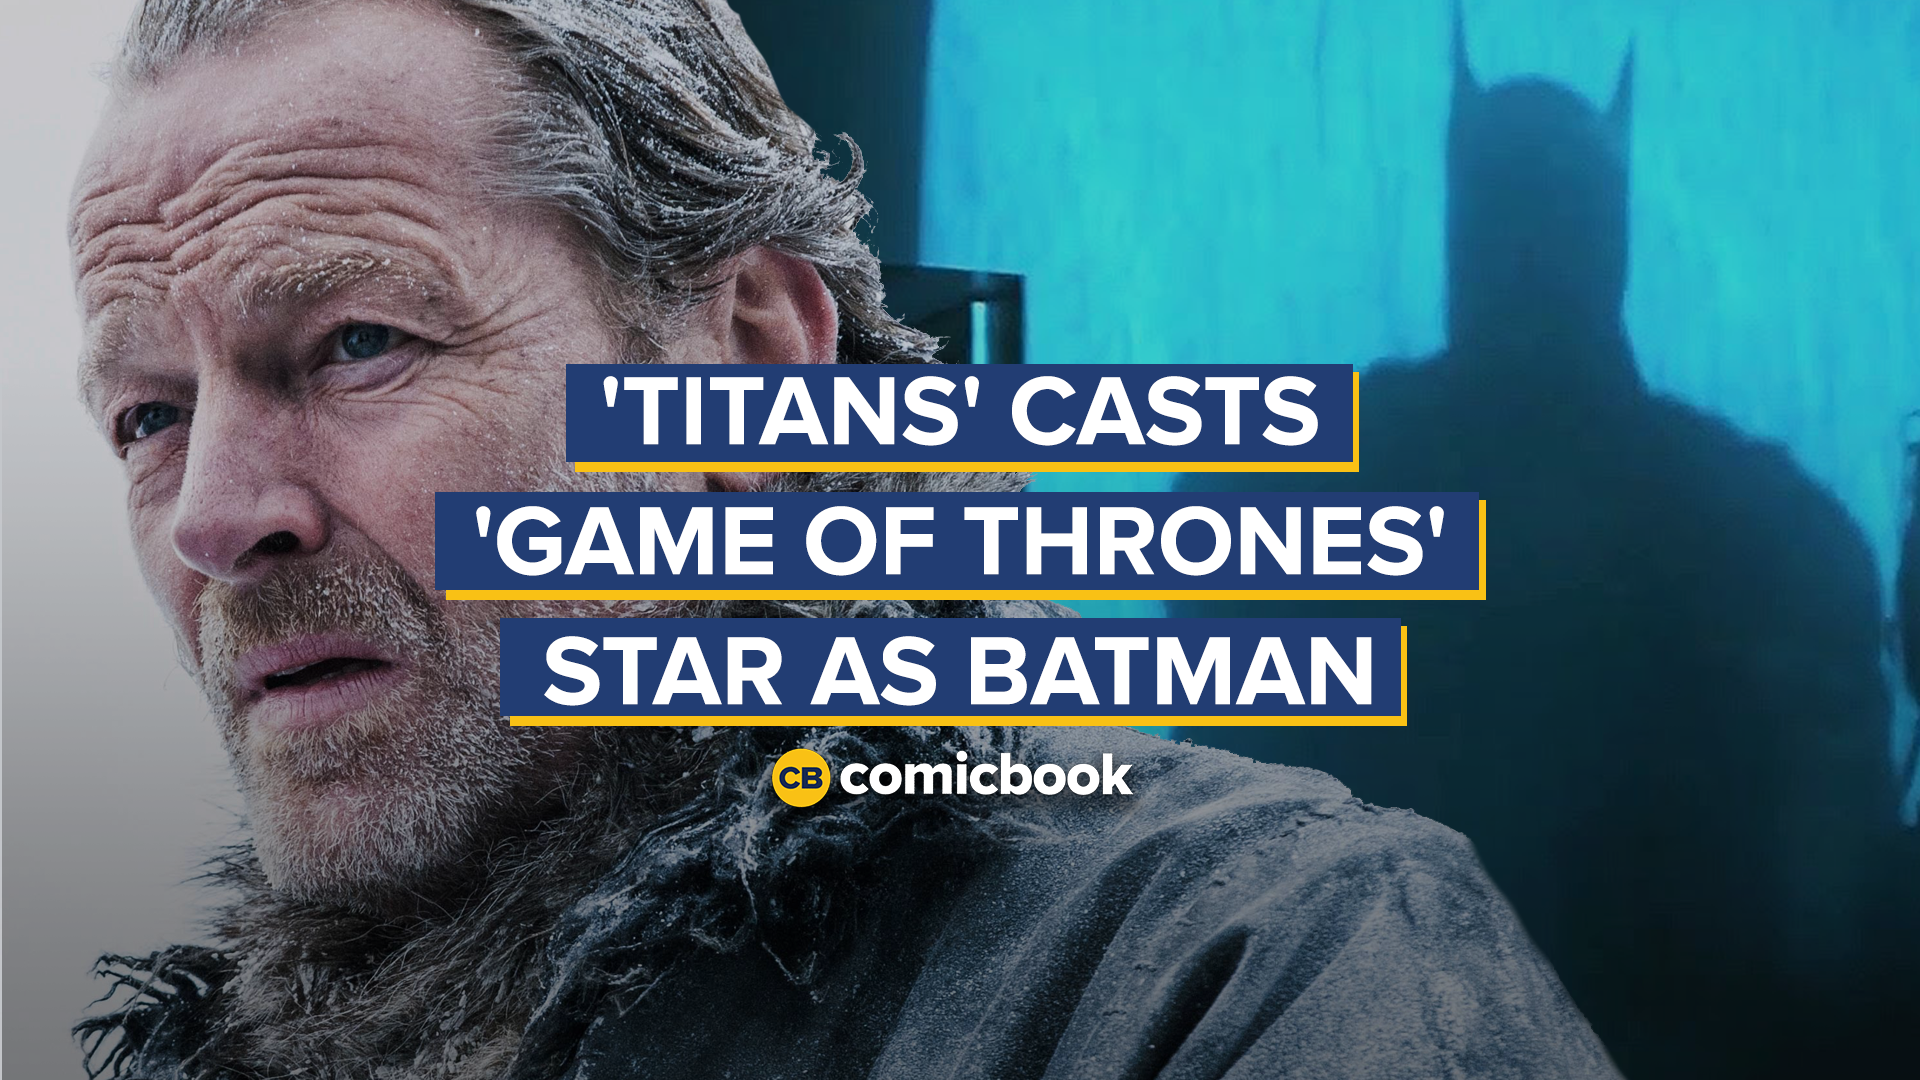 'Titans' Casts 'Game of Thrones' Star as Batman Ahead of Season 2 screen capture